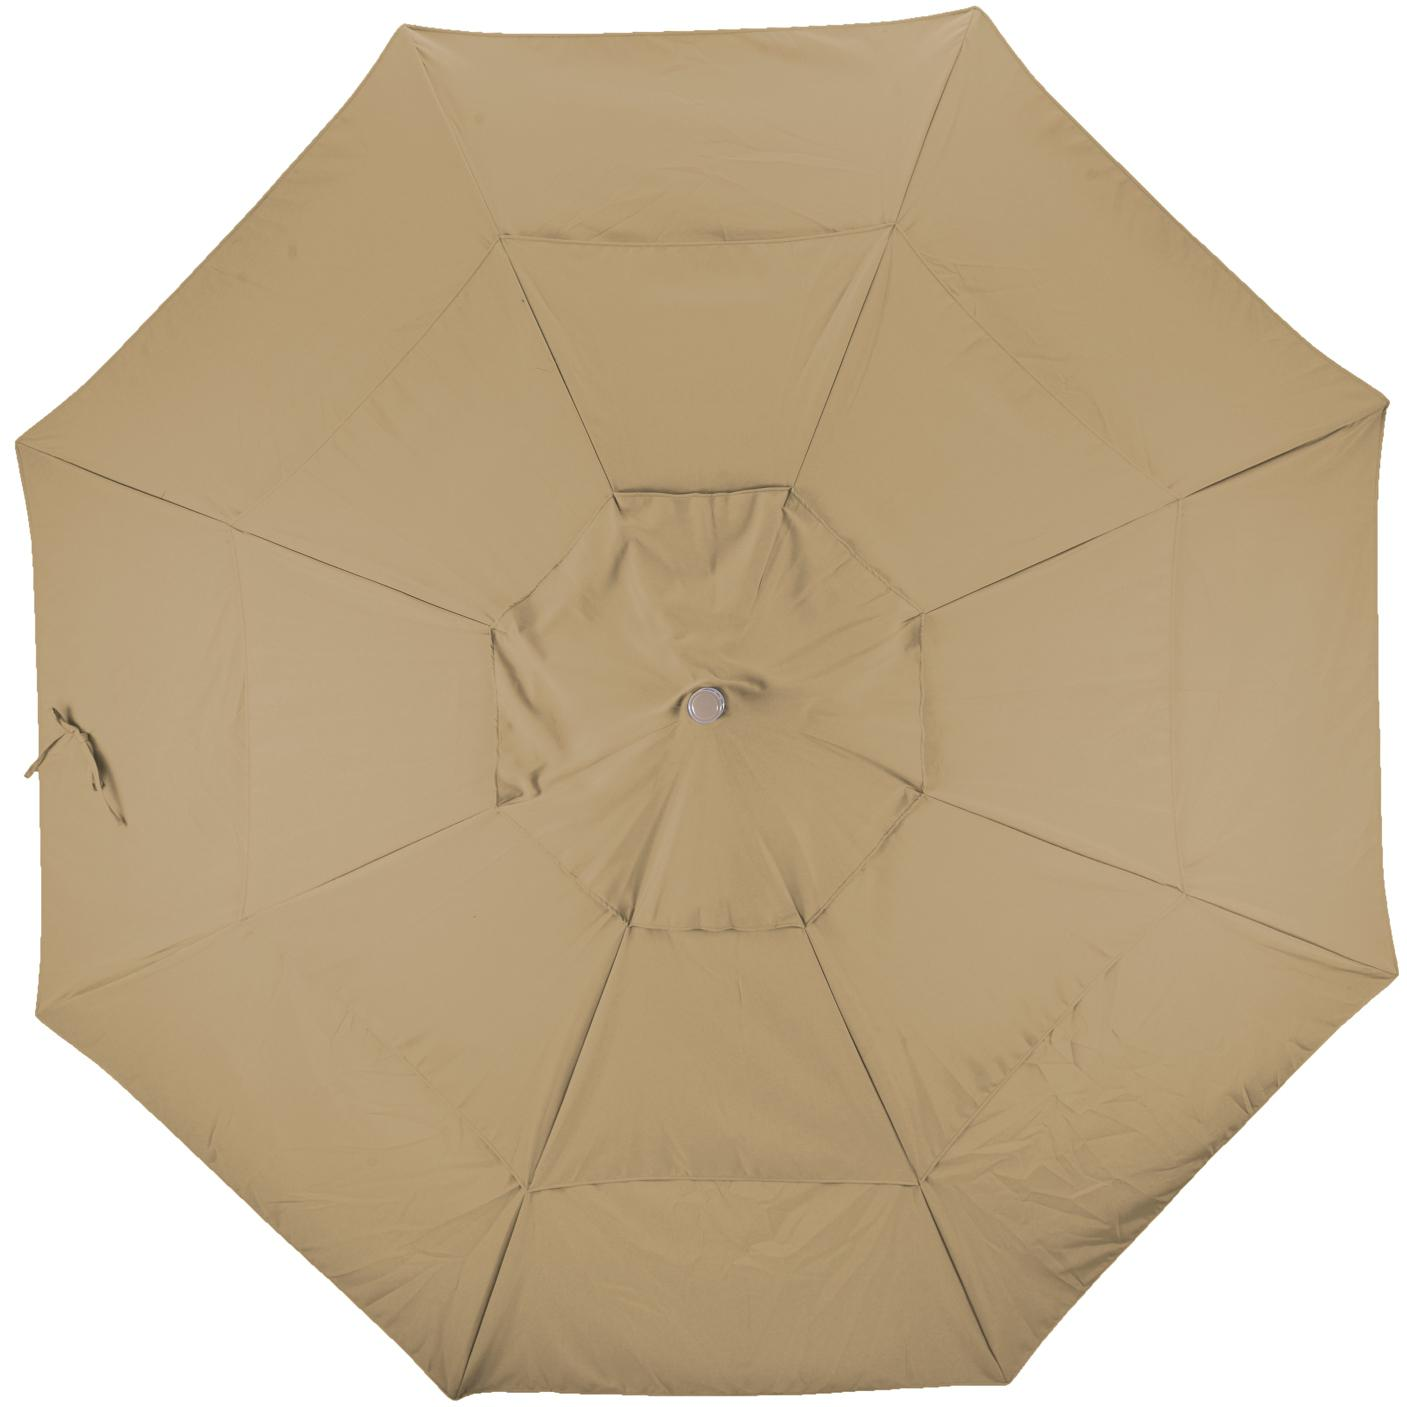 California Umbrella Sunbrella A Fabric In Heather Beige 2909432